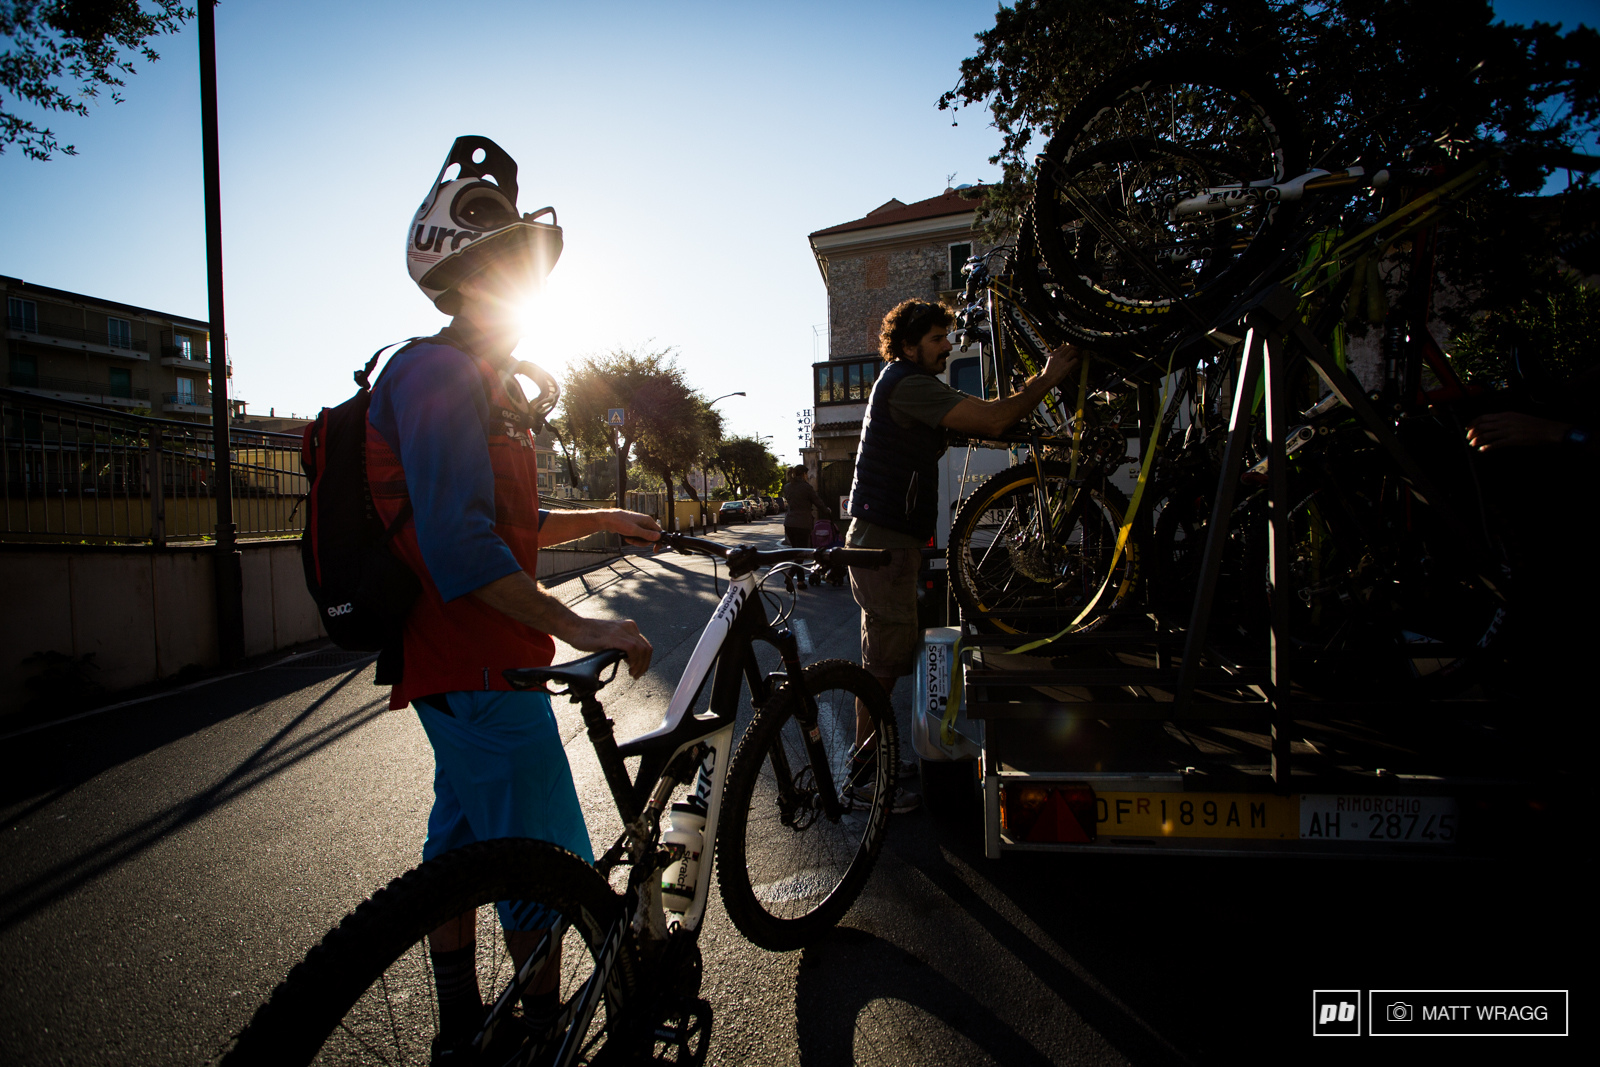 Shuttling is allowed at Superenduro races. The only stipulation is that you can only shuttle on the tarmac road, you are not allowed to shuttle on the fireroads that reach most of the trails here.